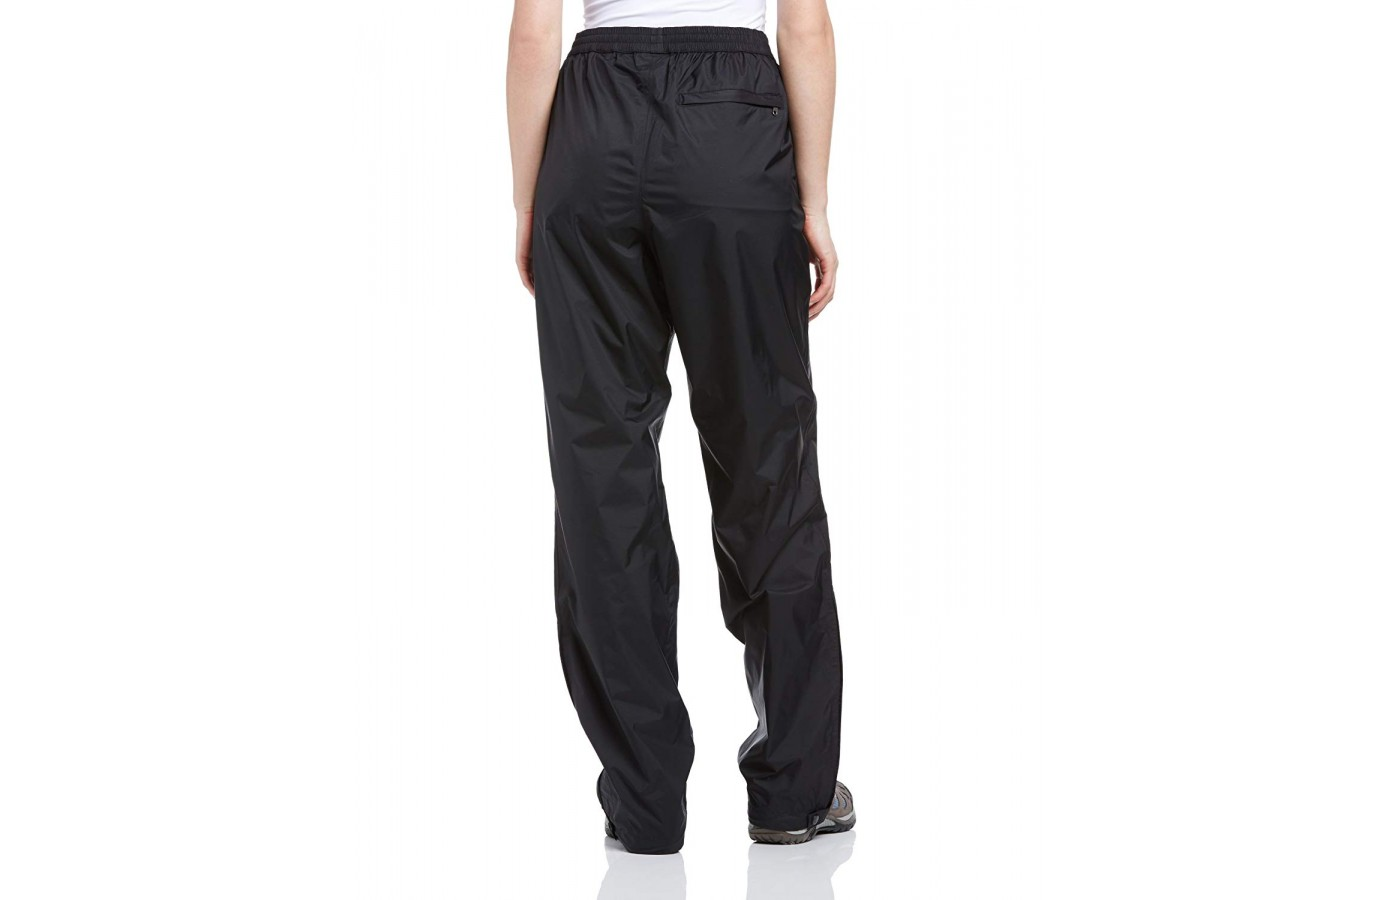 The pants have an excellent set of mesh-lined pockets, one in the rear and two in front.